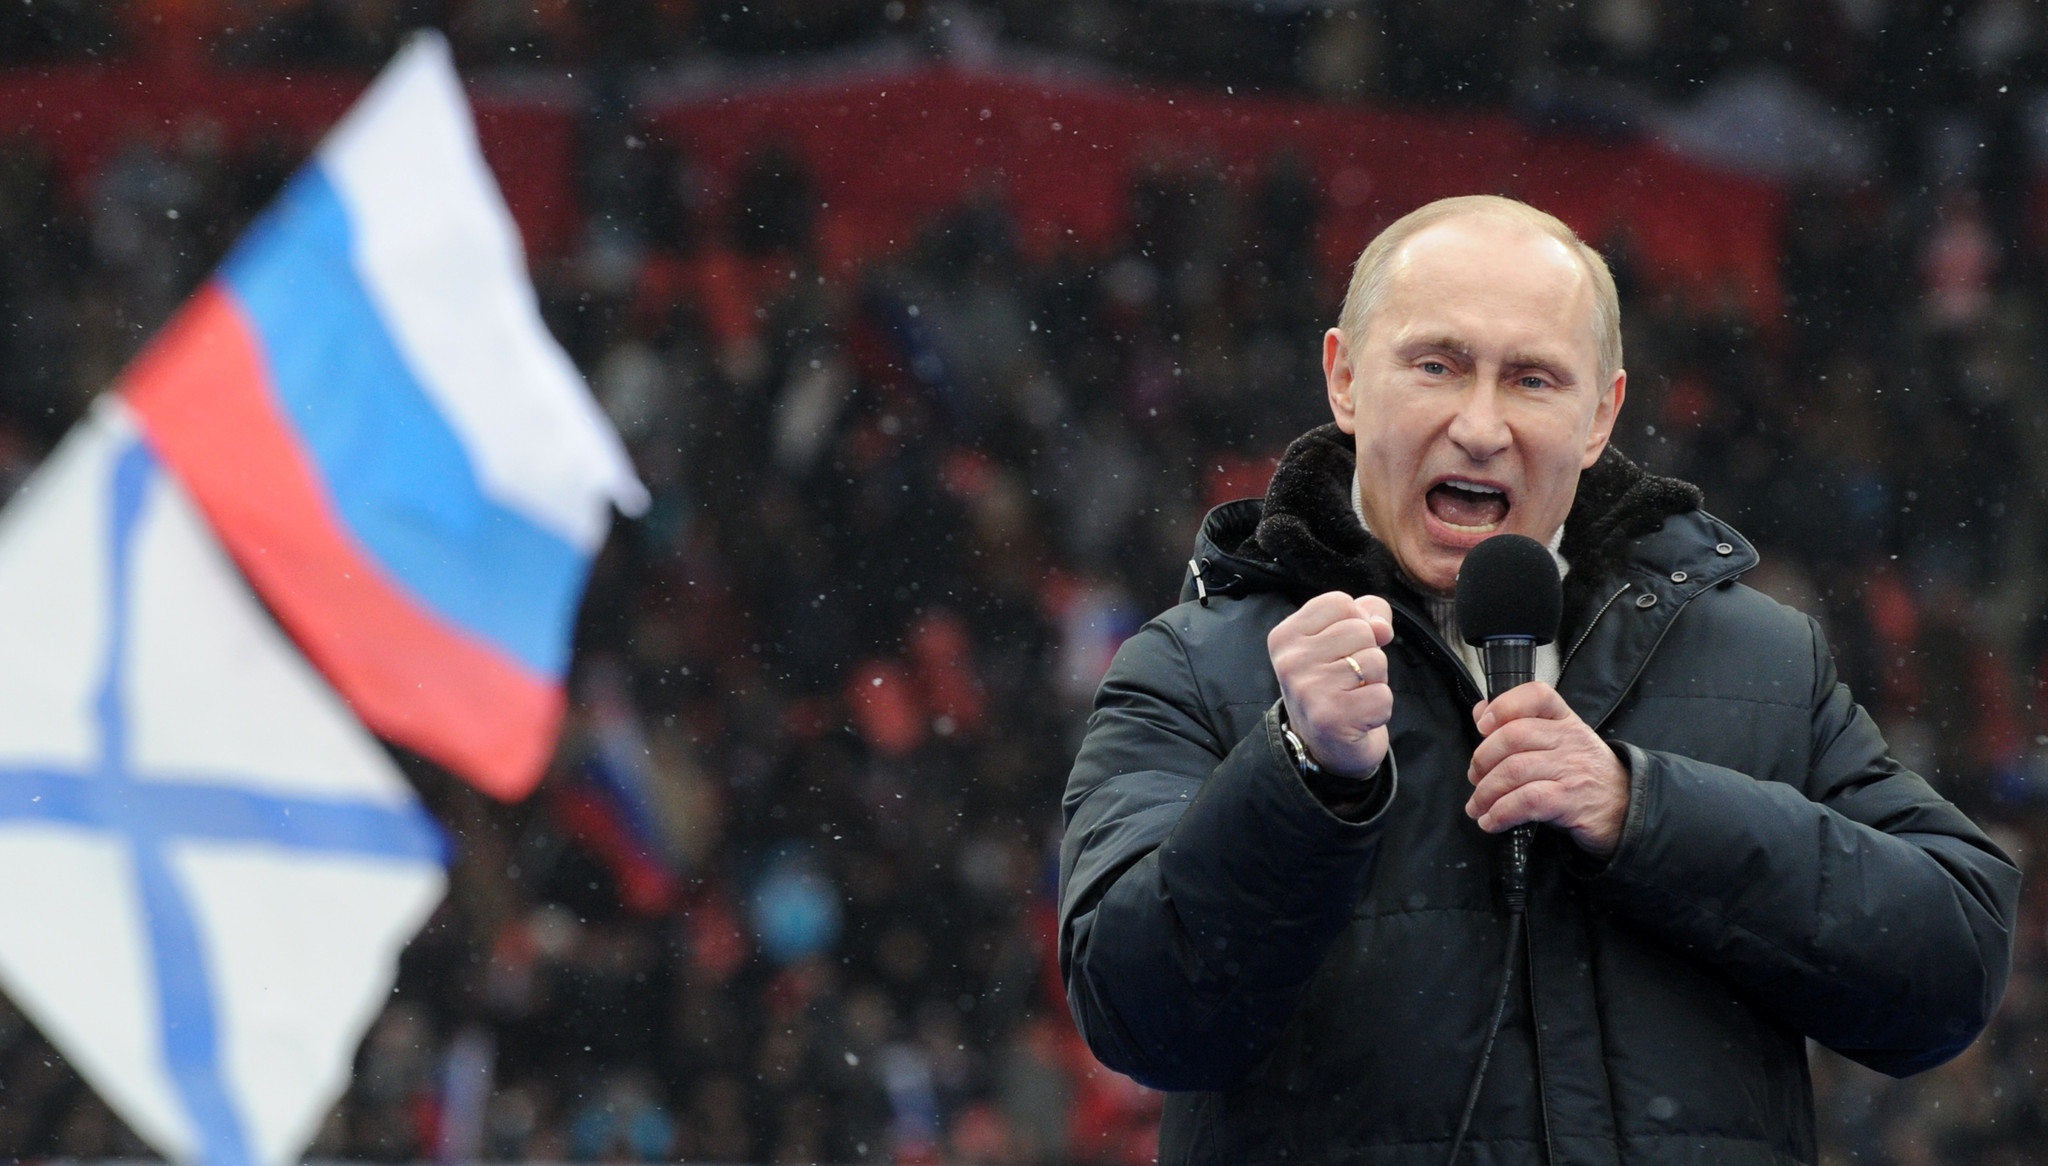 Putin, once critical of Stalin, now embraces Soviet dictator's tactics